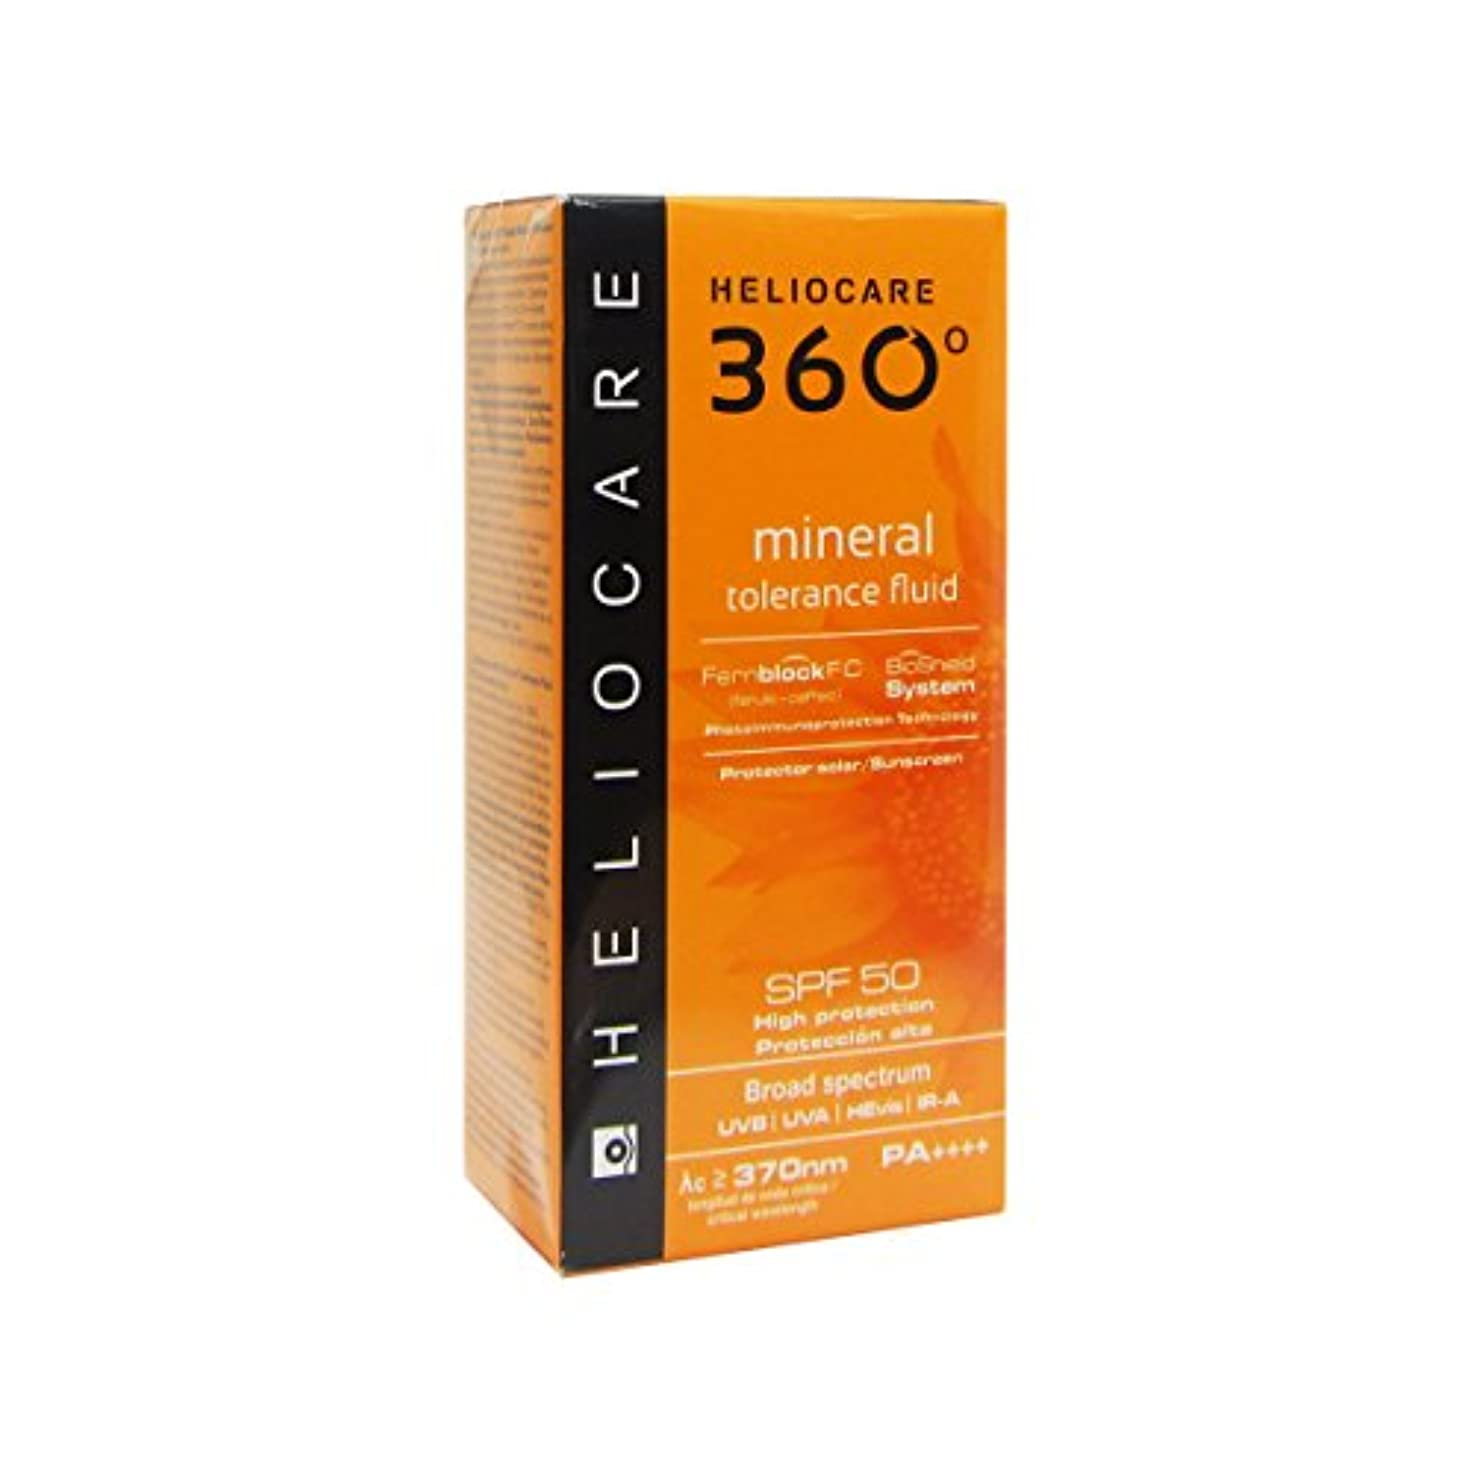 怒り野心チョークHeliocare 360 Mineral Tolerance Fluid Spf50 50ml [並行輸入品]